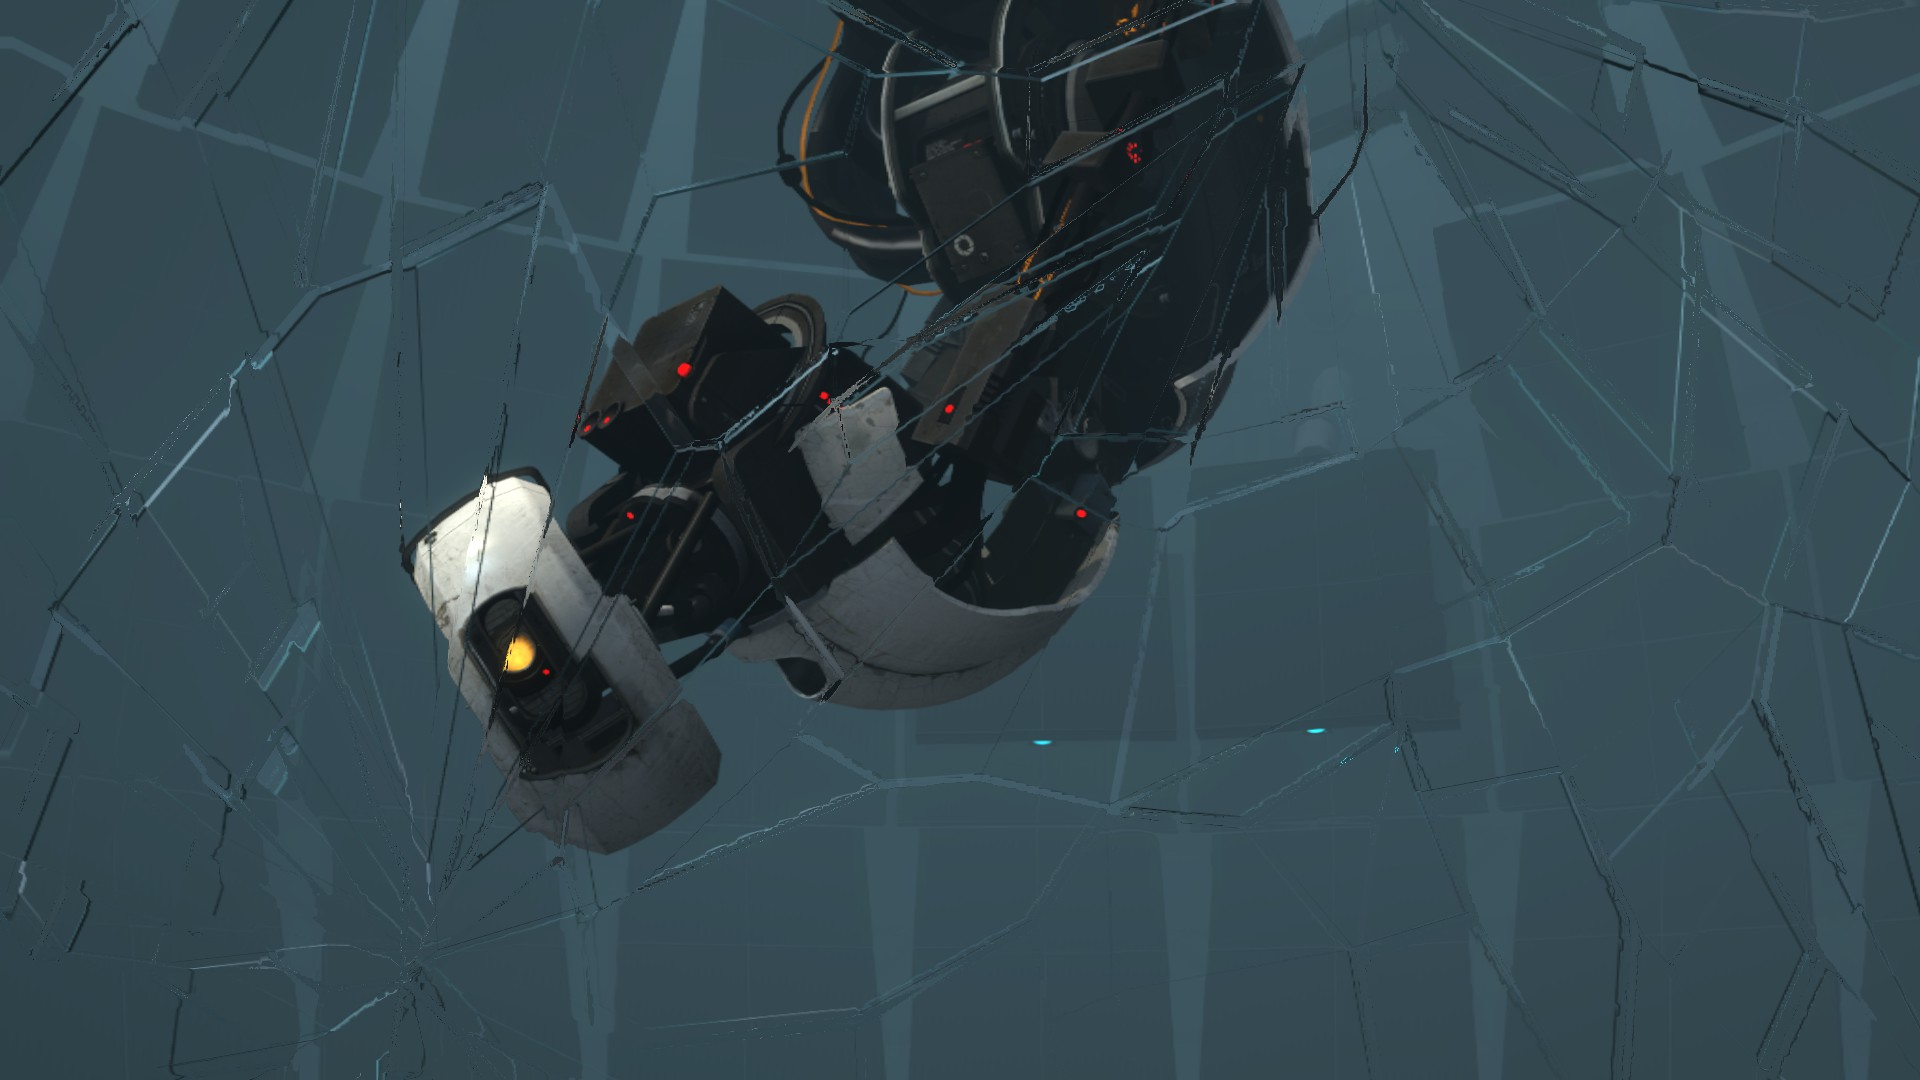 glados portal 2 spoiler wallpaper pictures to pin on pinterest